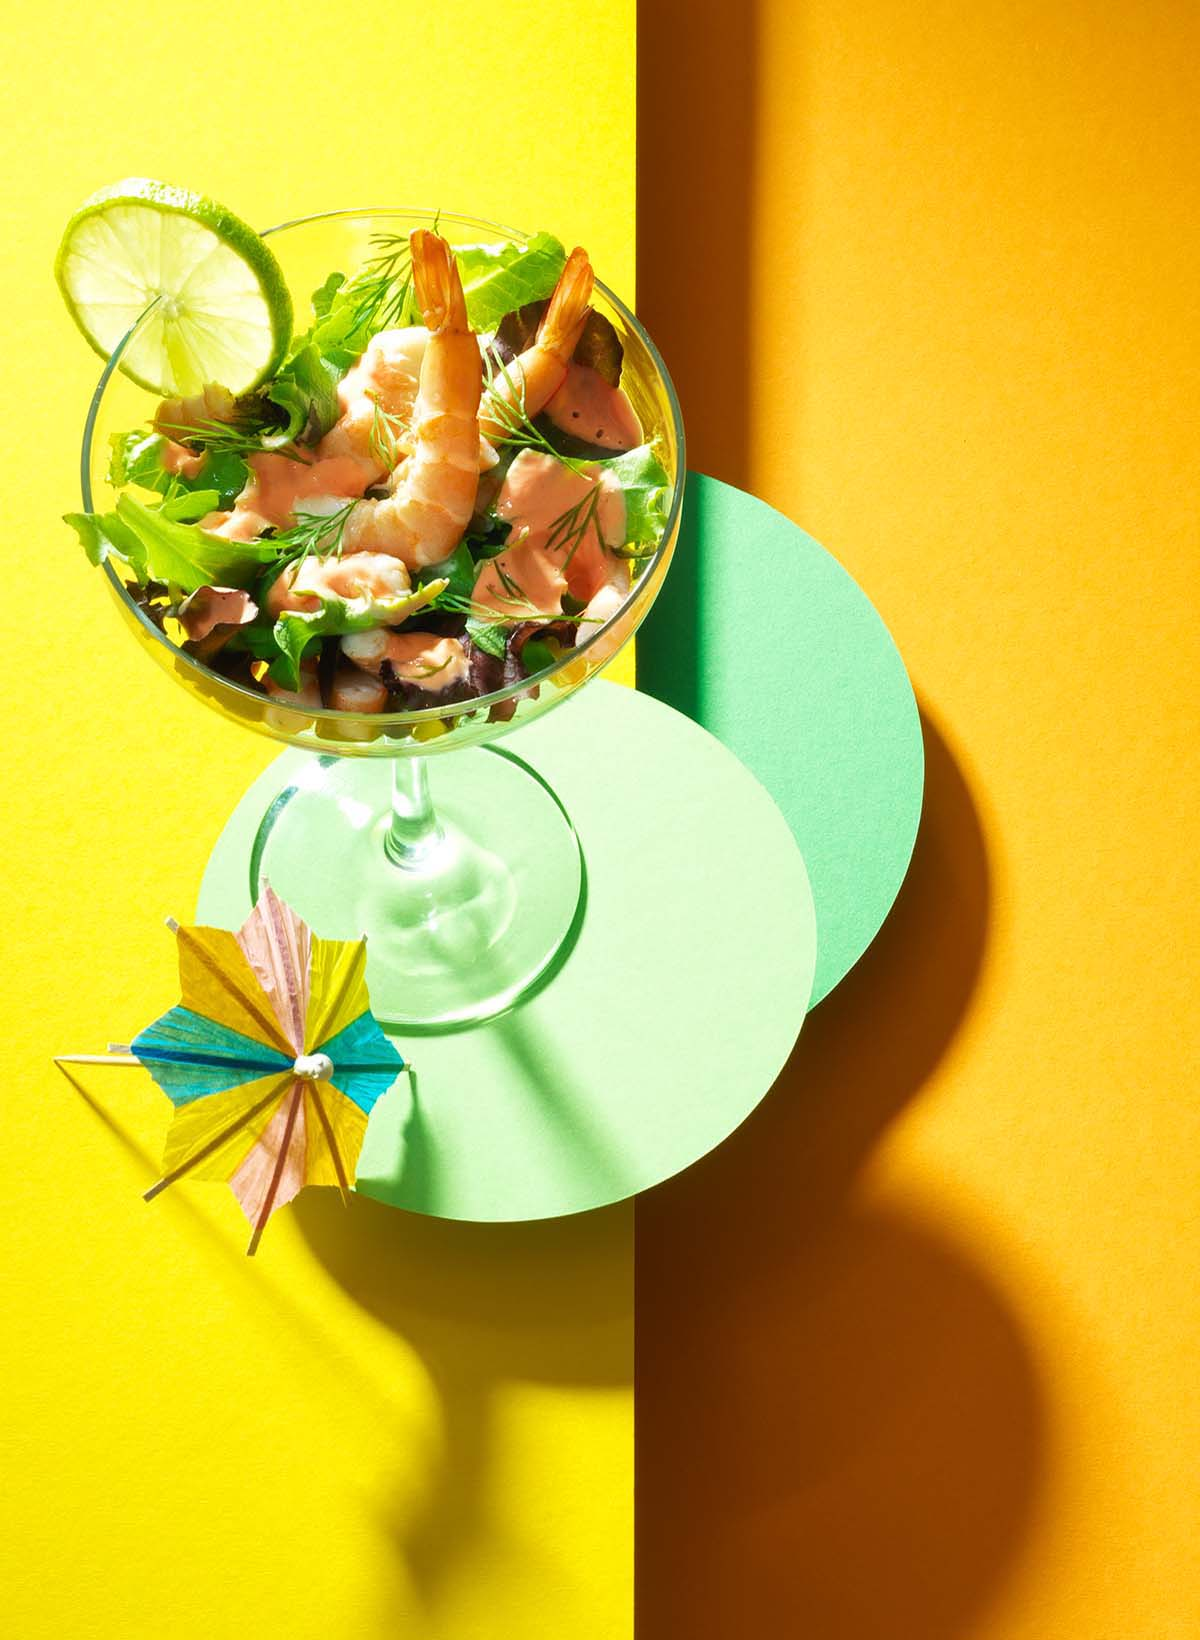 Food photography styling of a cocktail with shrimp and vegetables made by Studio_m Amsterdam